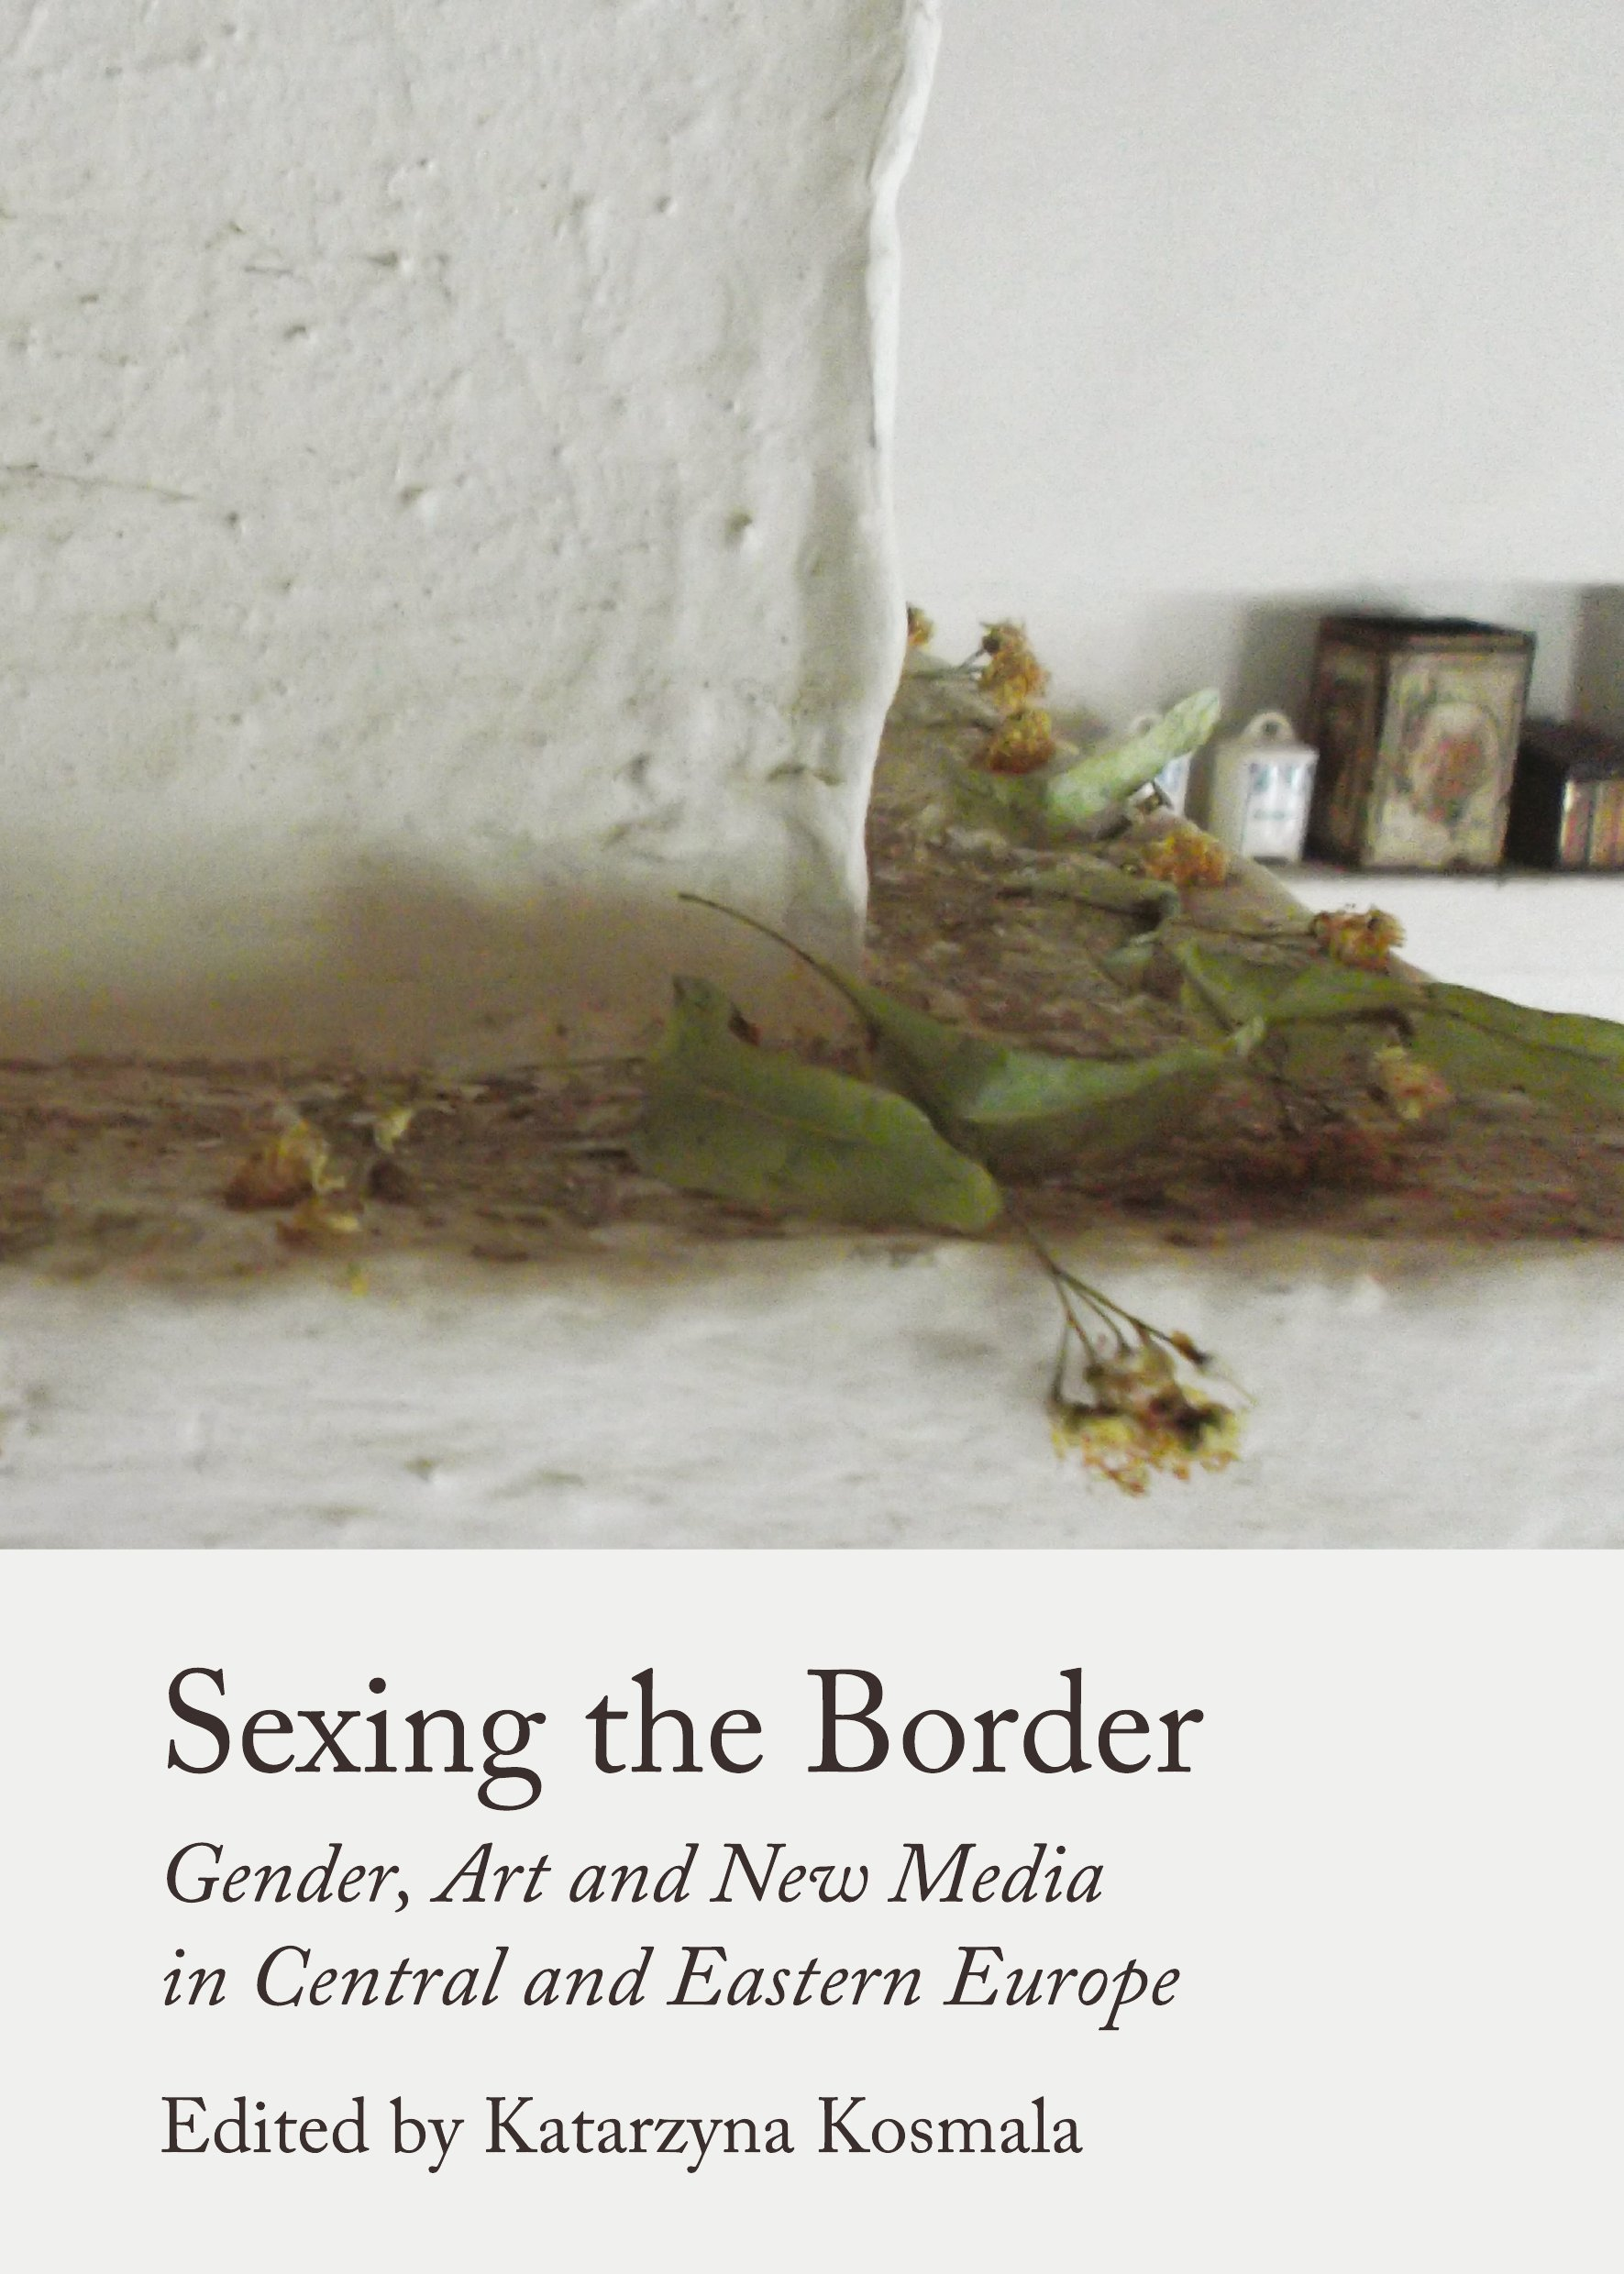 Sexing the Border: Gender, Art and New Media in Central and Eastern Europe